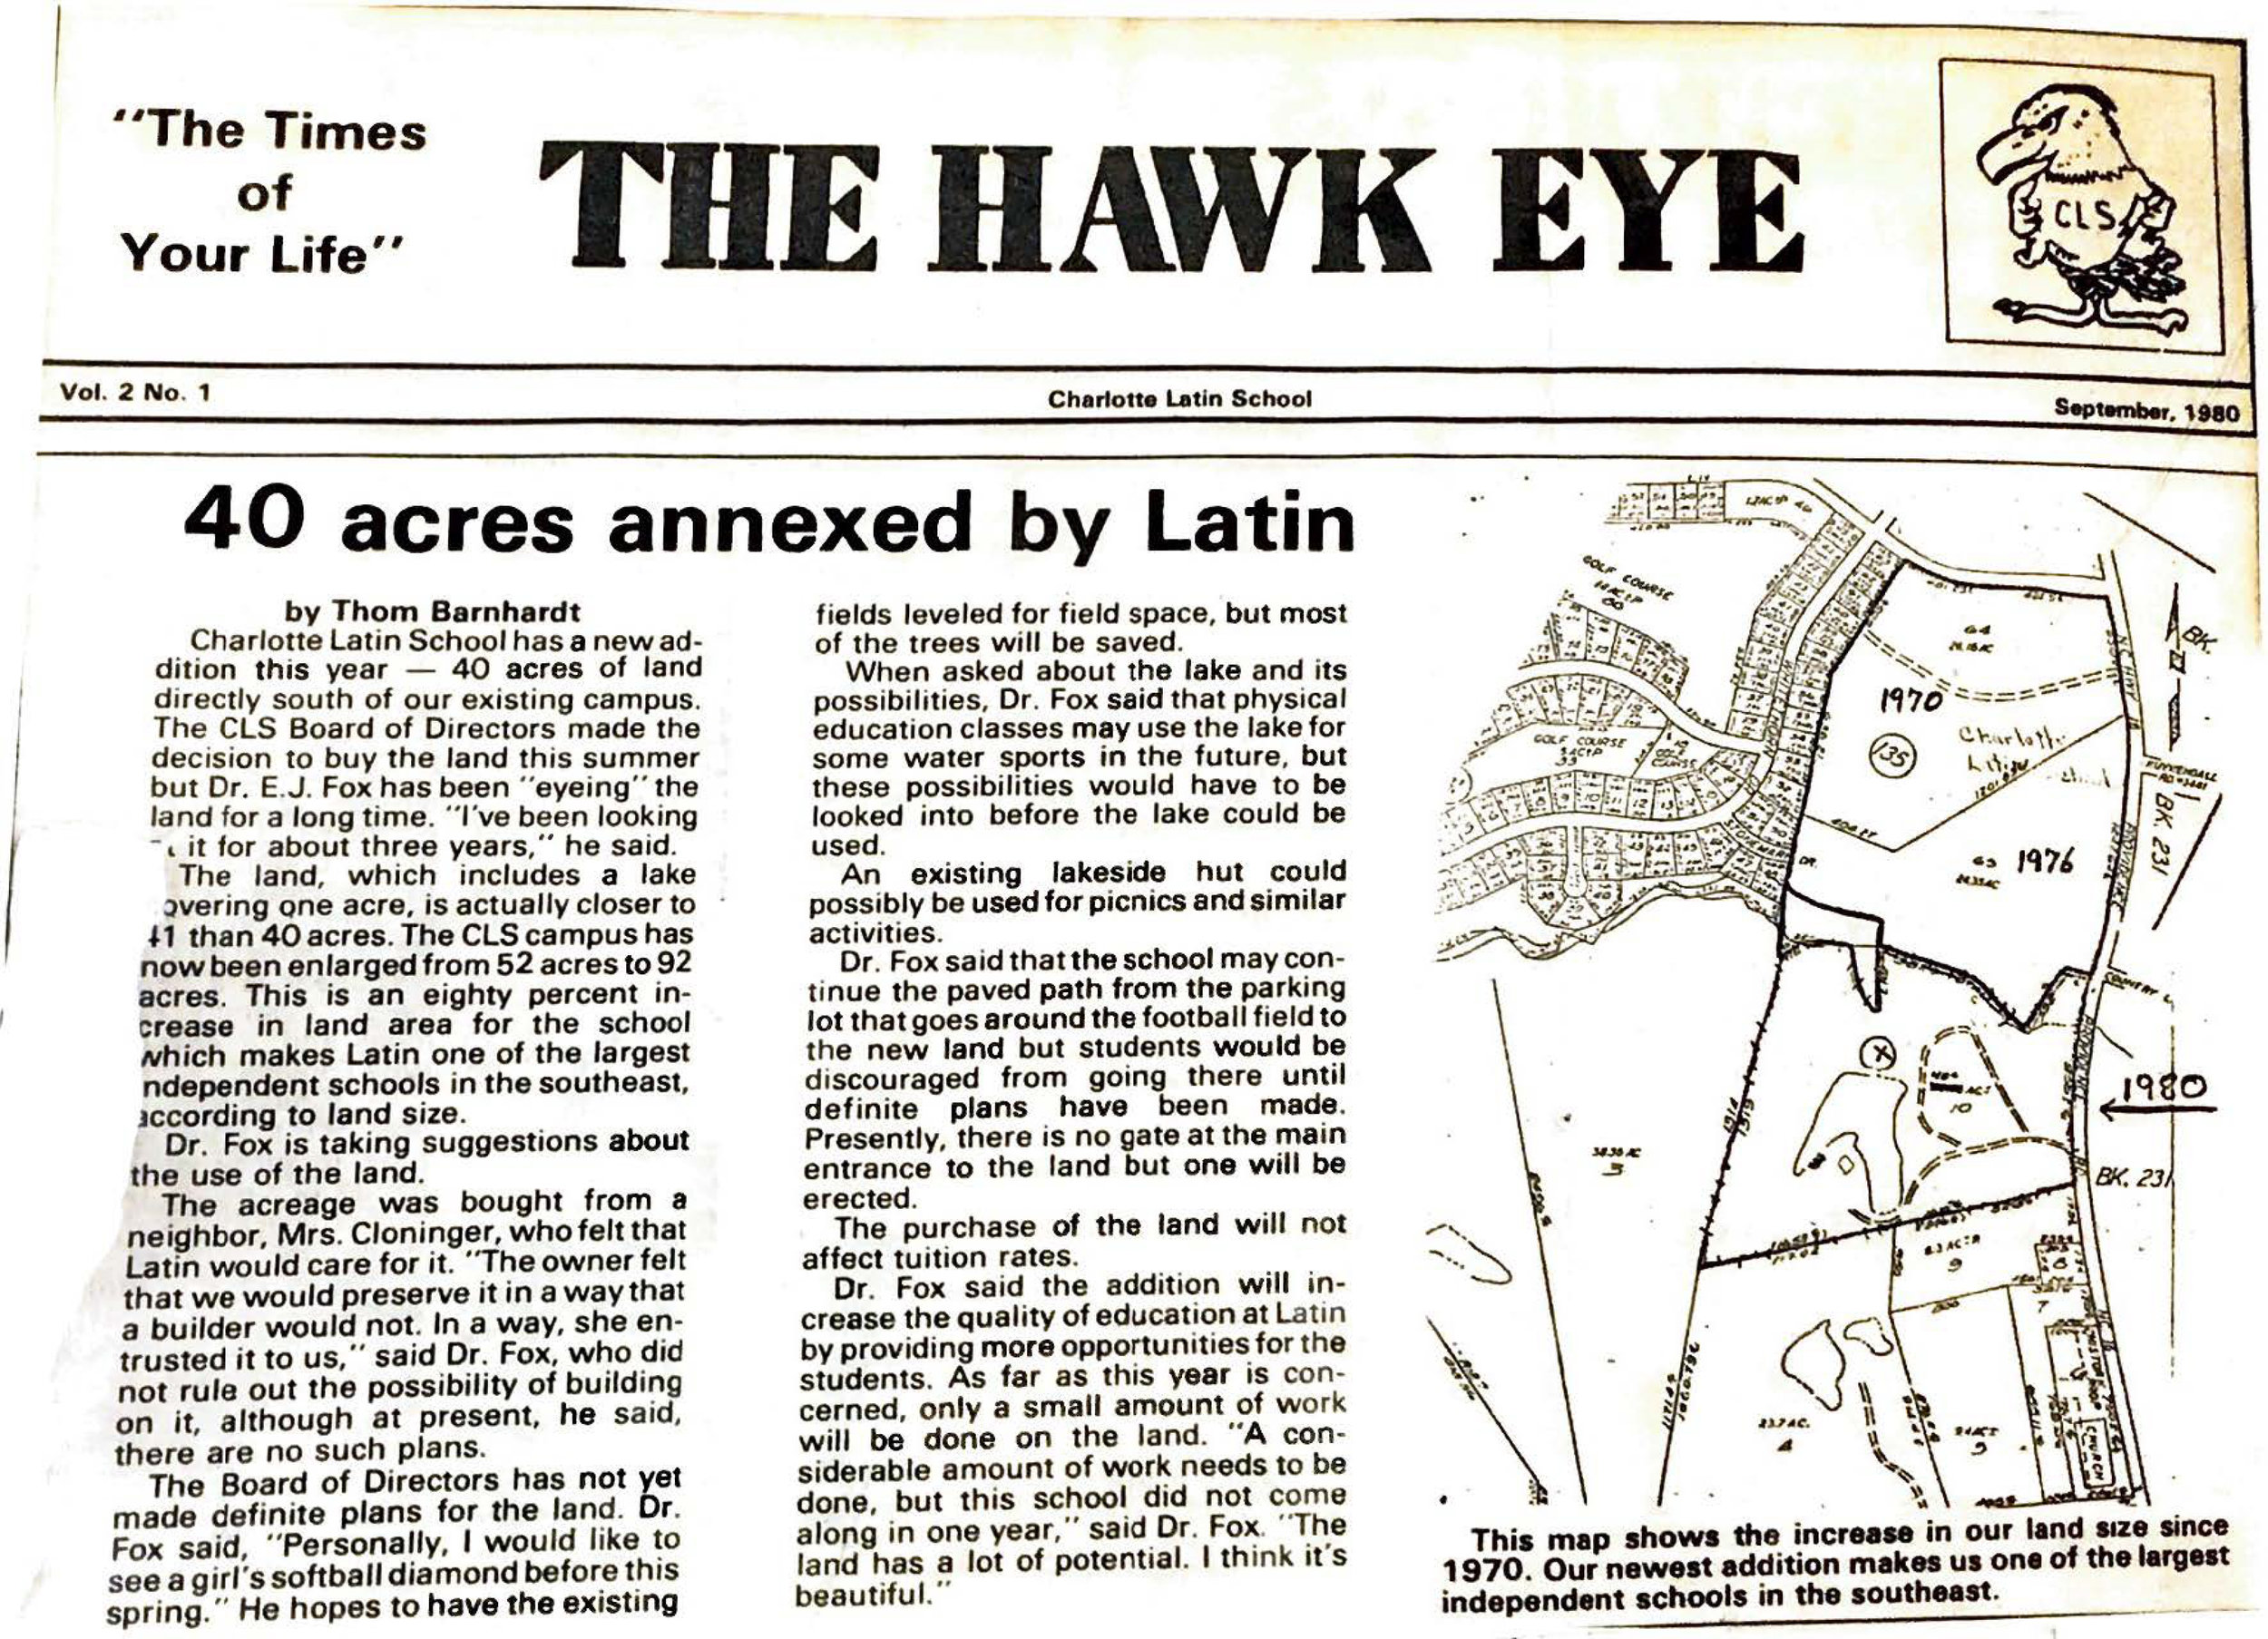 September, 1980,  The Hawk Eye  article on the purchase of land